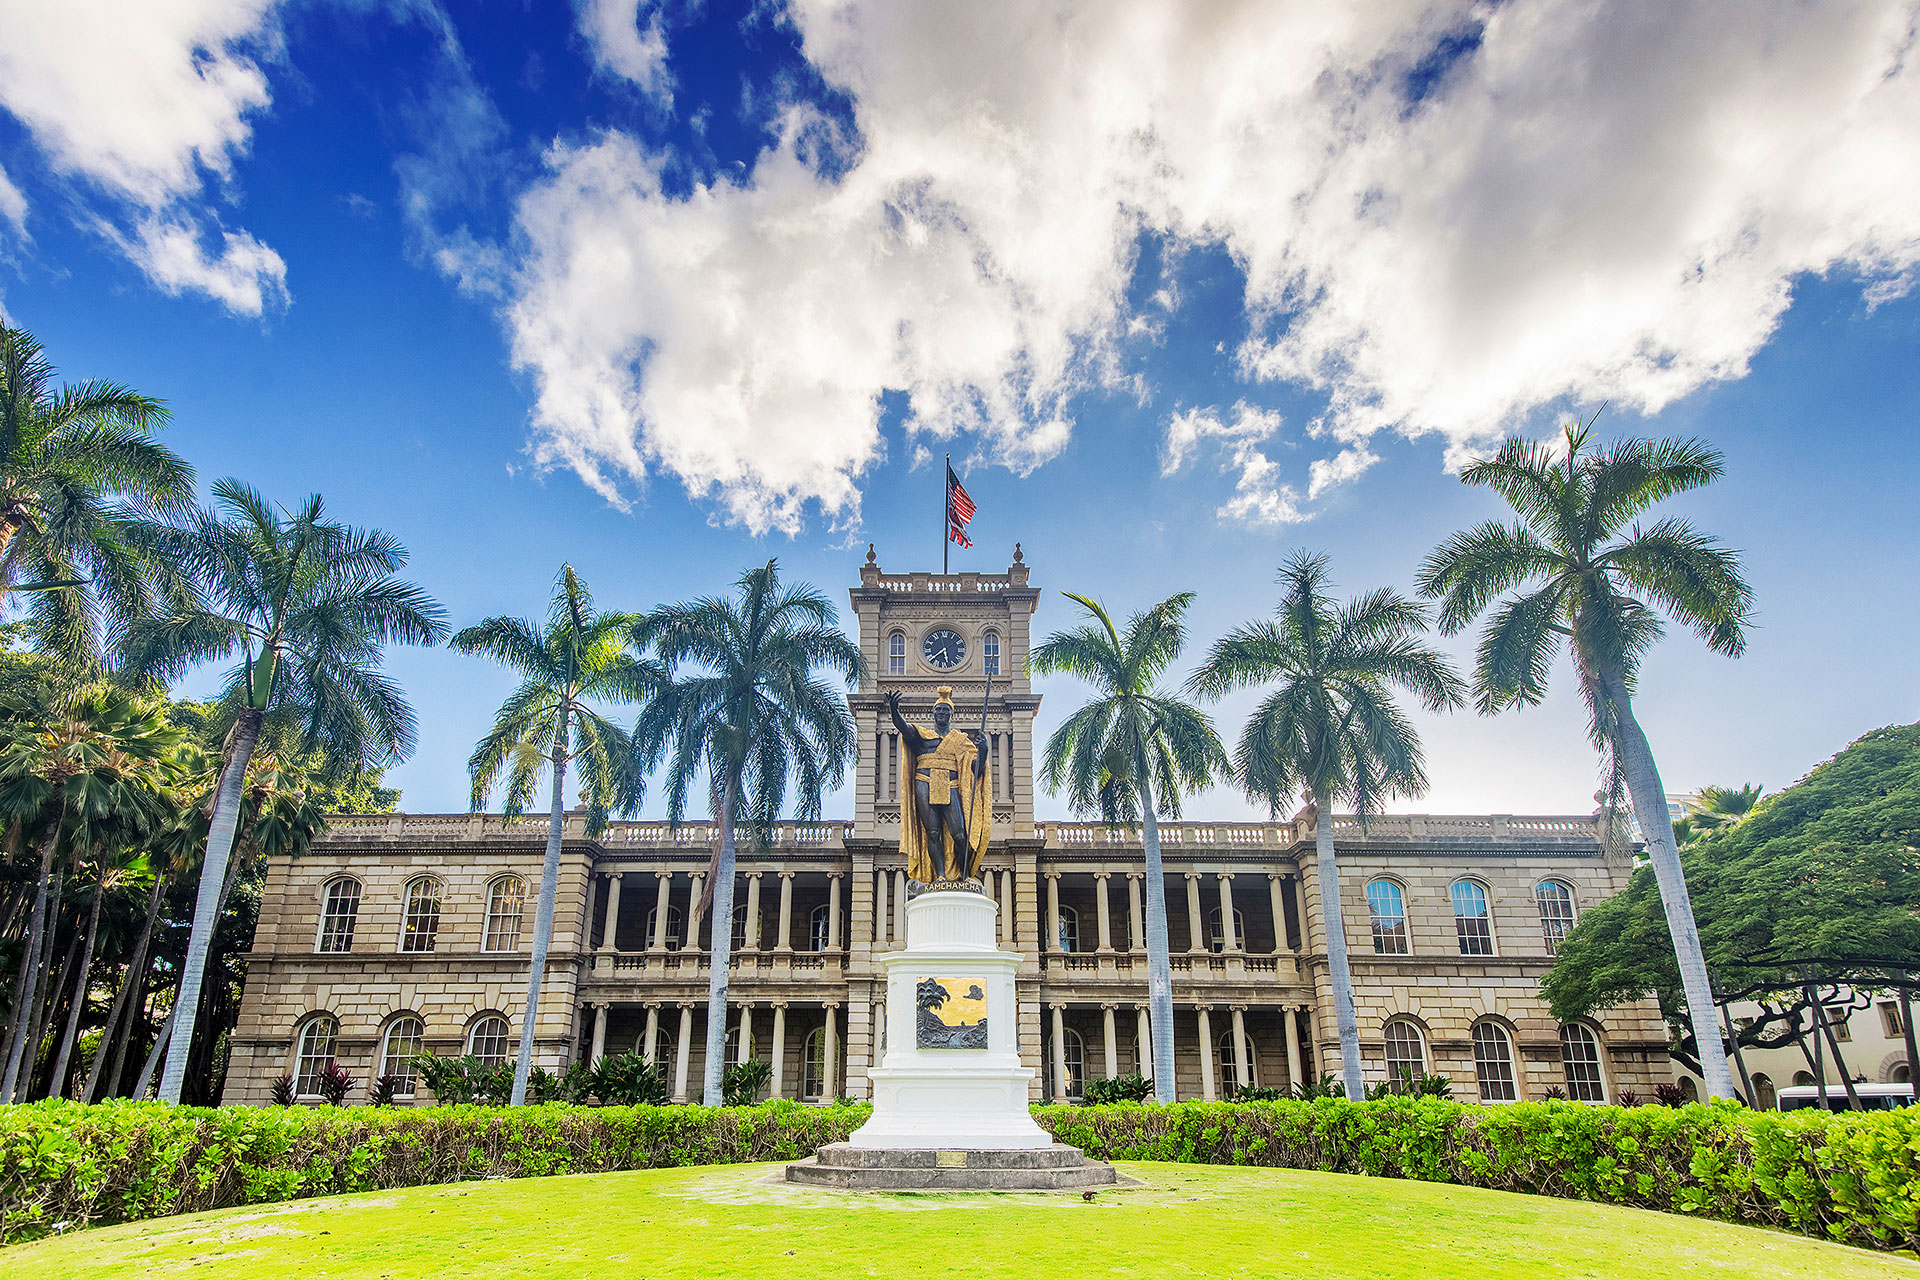 Iolani Palace; Courtesy of Allen G./Shutterstock.com